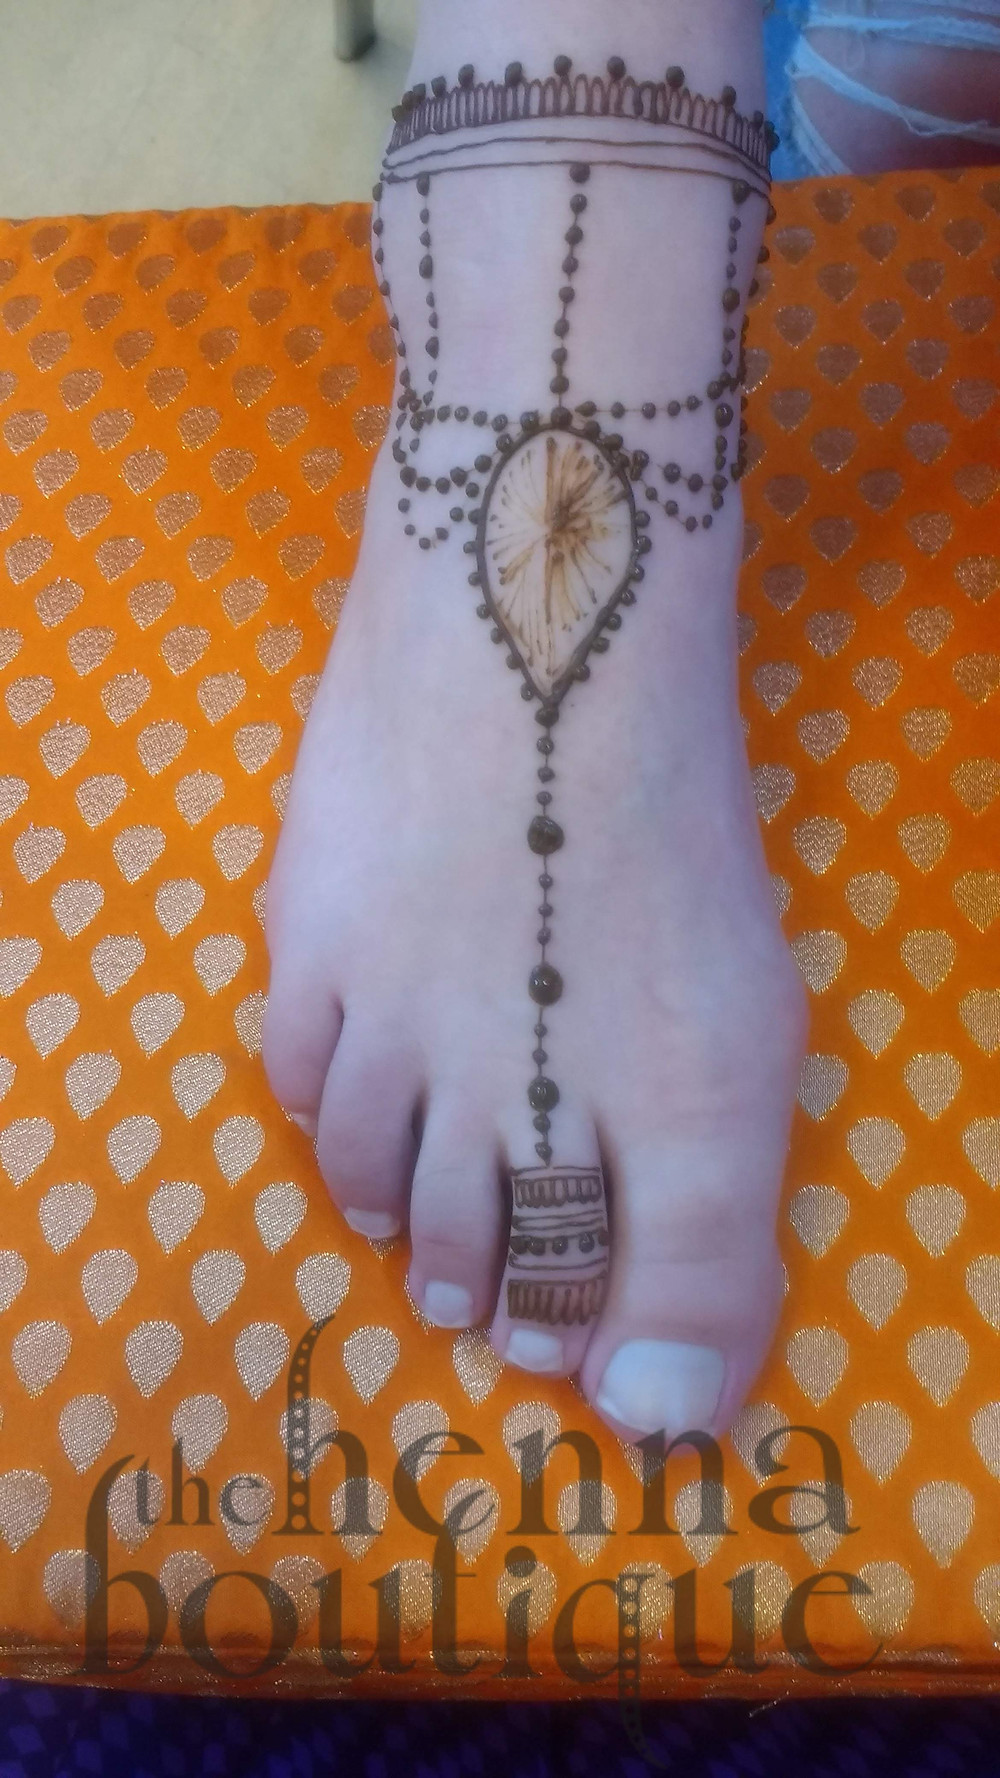 Foot design with a jewel centrepiece and chains